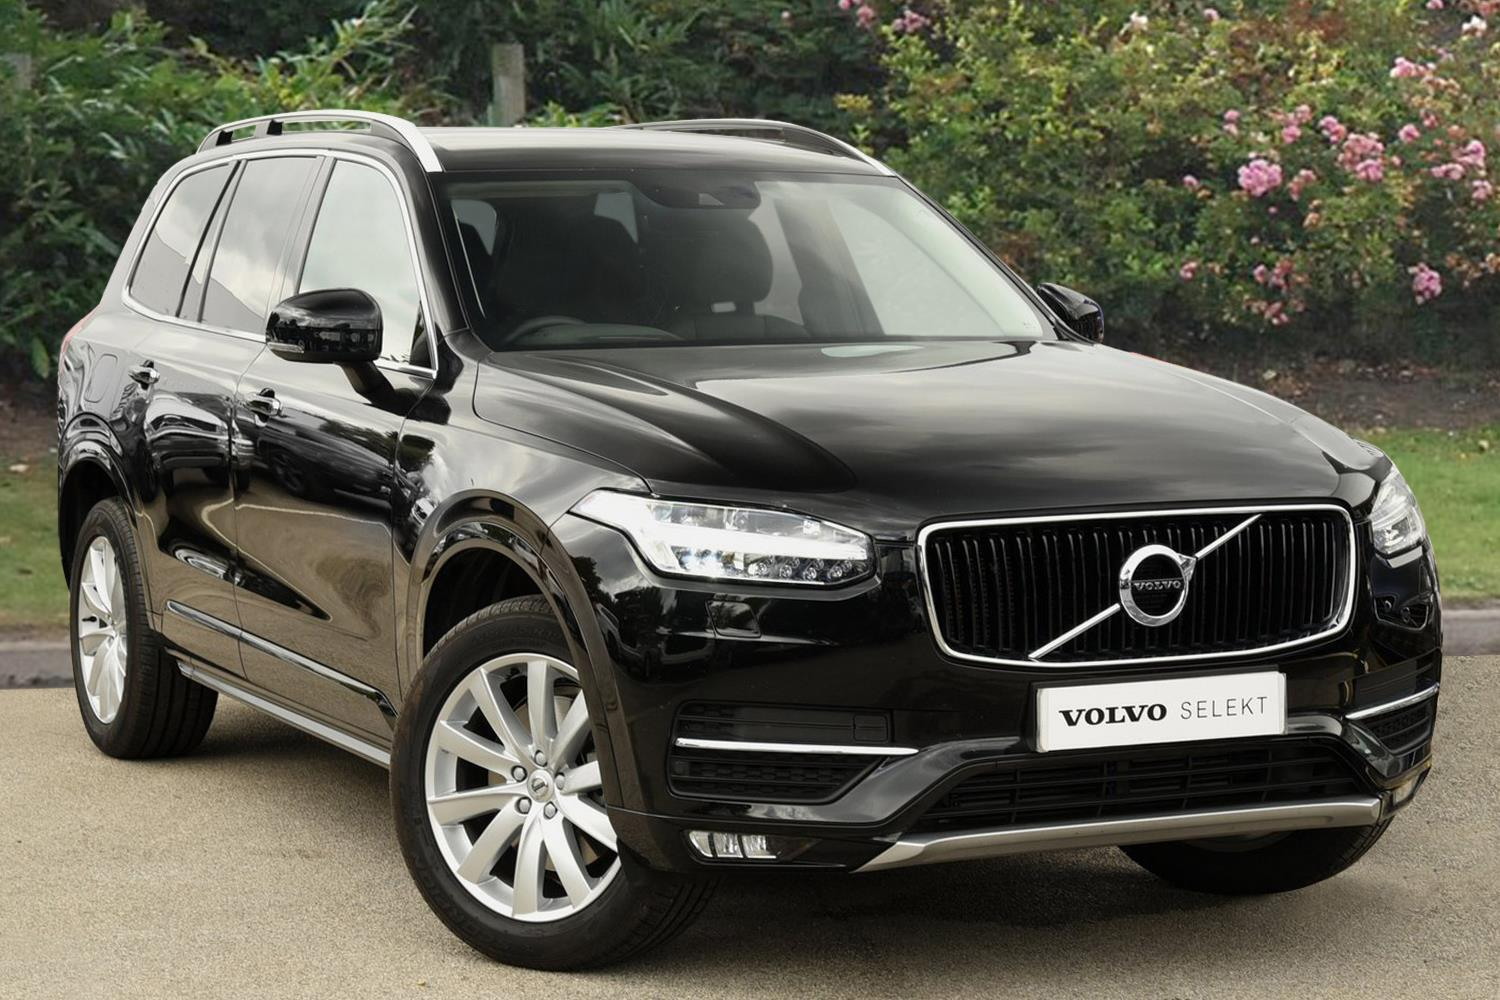 used volvo xc90 2 0 d5 powerpulse momentum 5dr awd geartronic diesel estate for sale in scotland. Black Bedroom Furniture Sets. Home Design Ideas